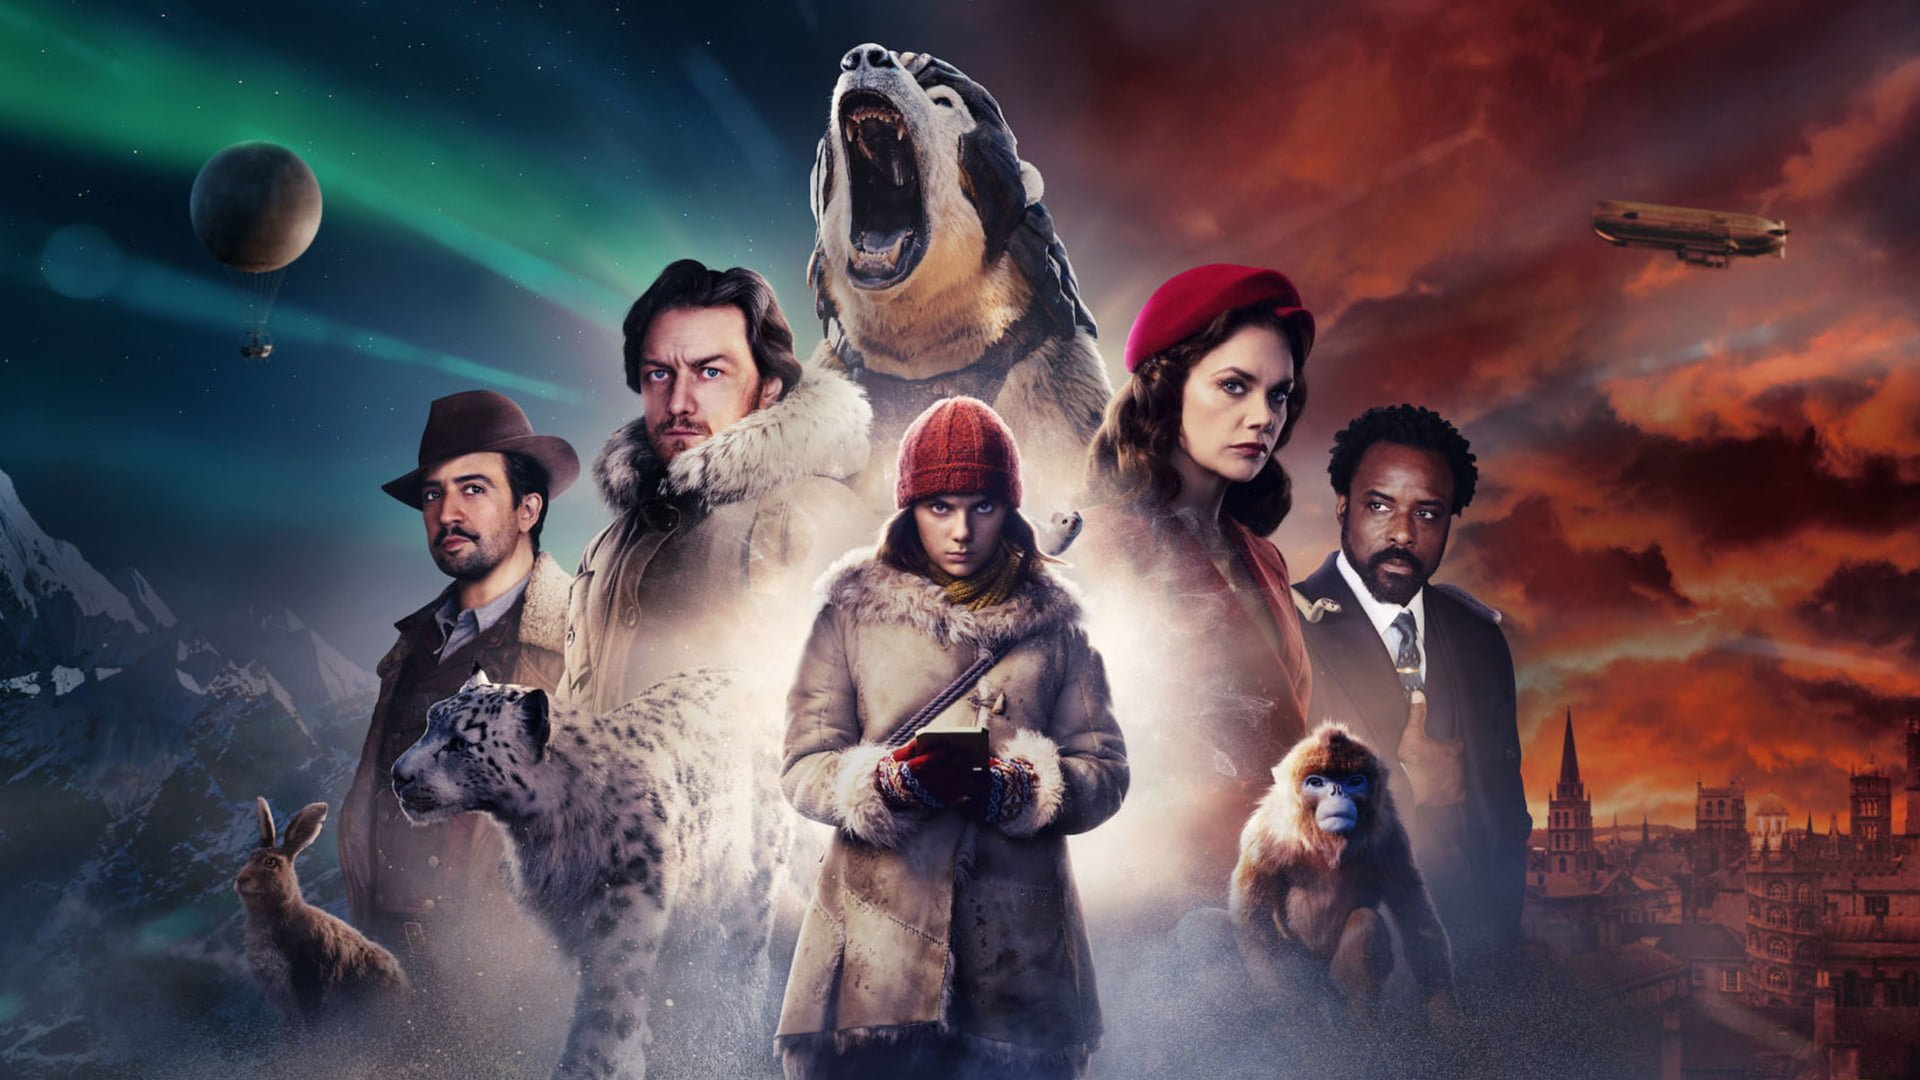 Crítica: His Dark Materials, série da HBO